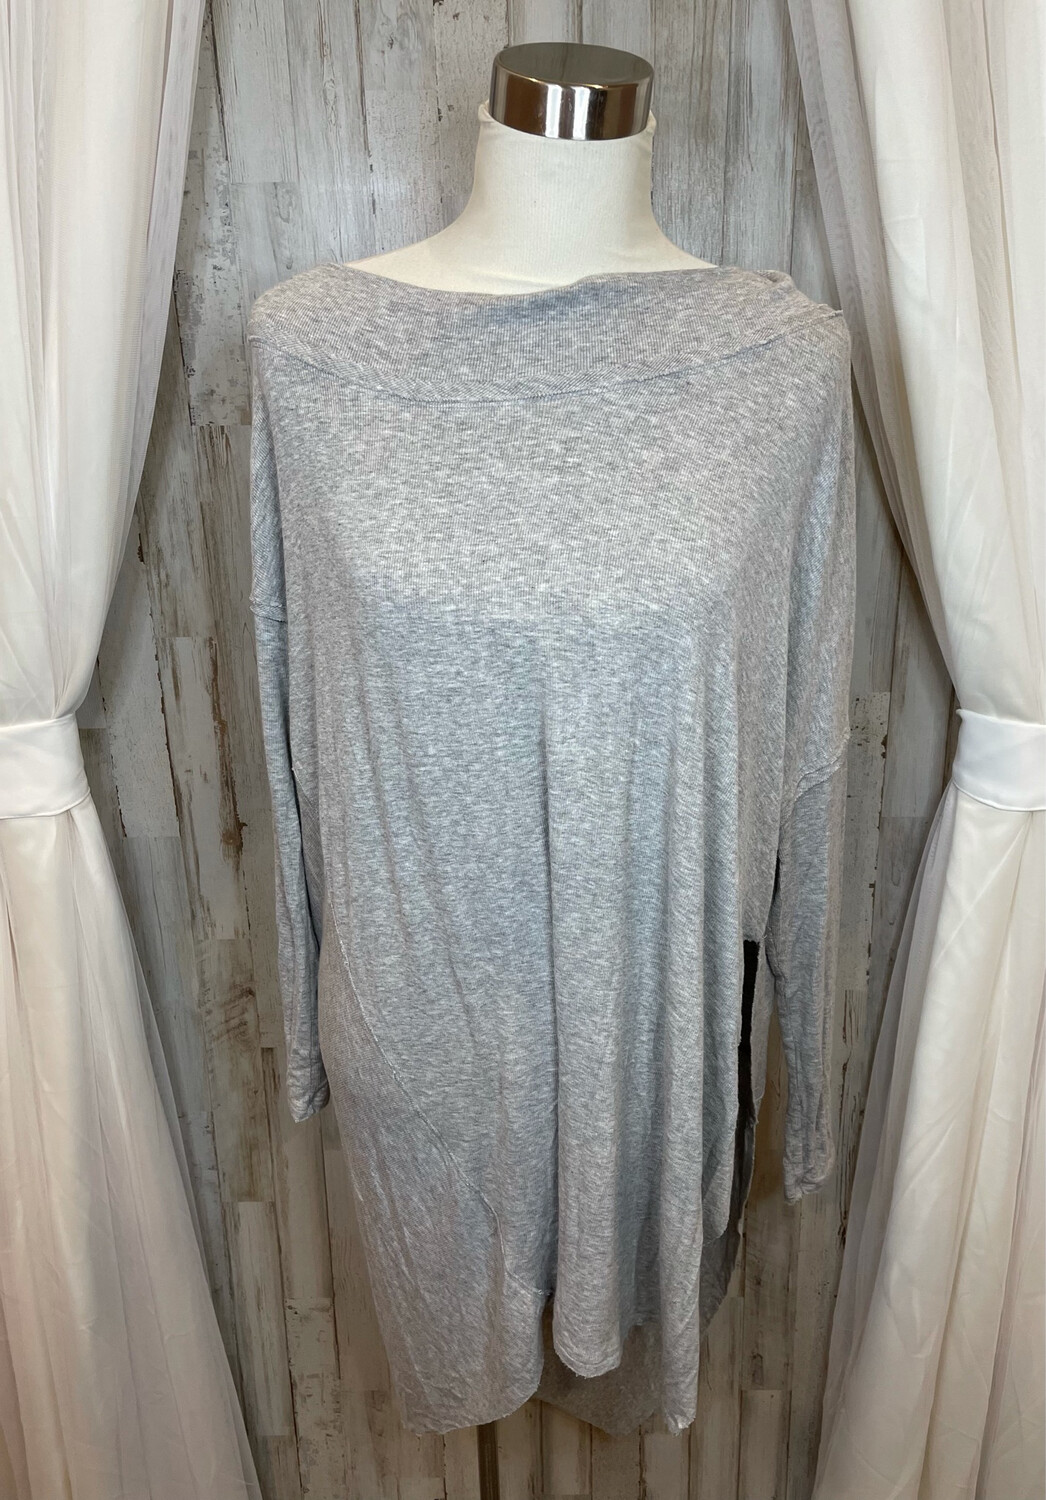 We The Free Grey Oversized Ribbed High Low Top - M